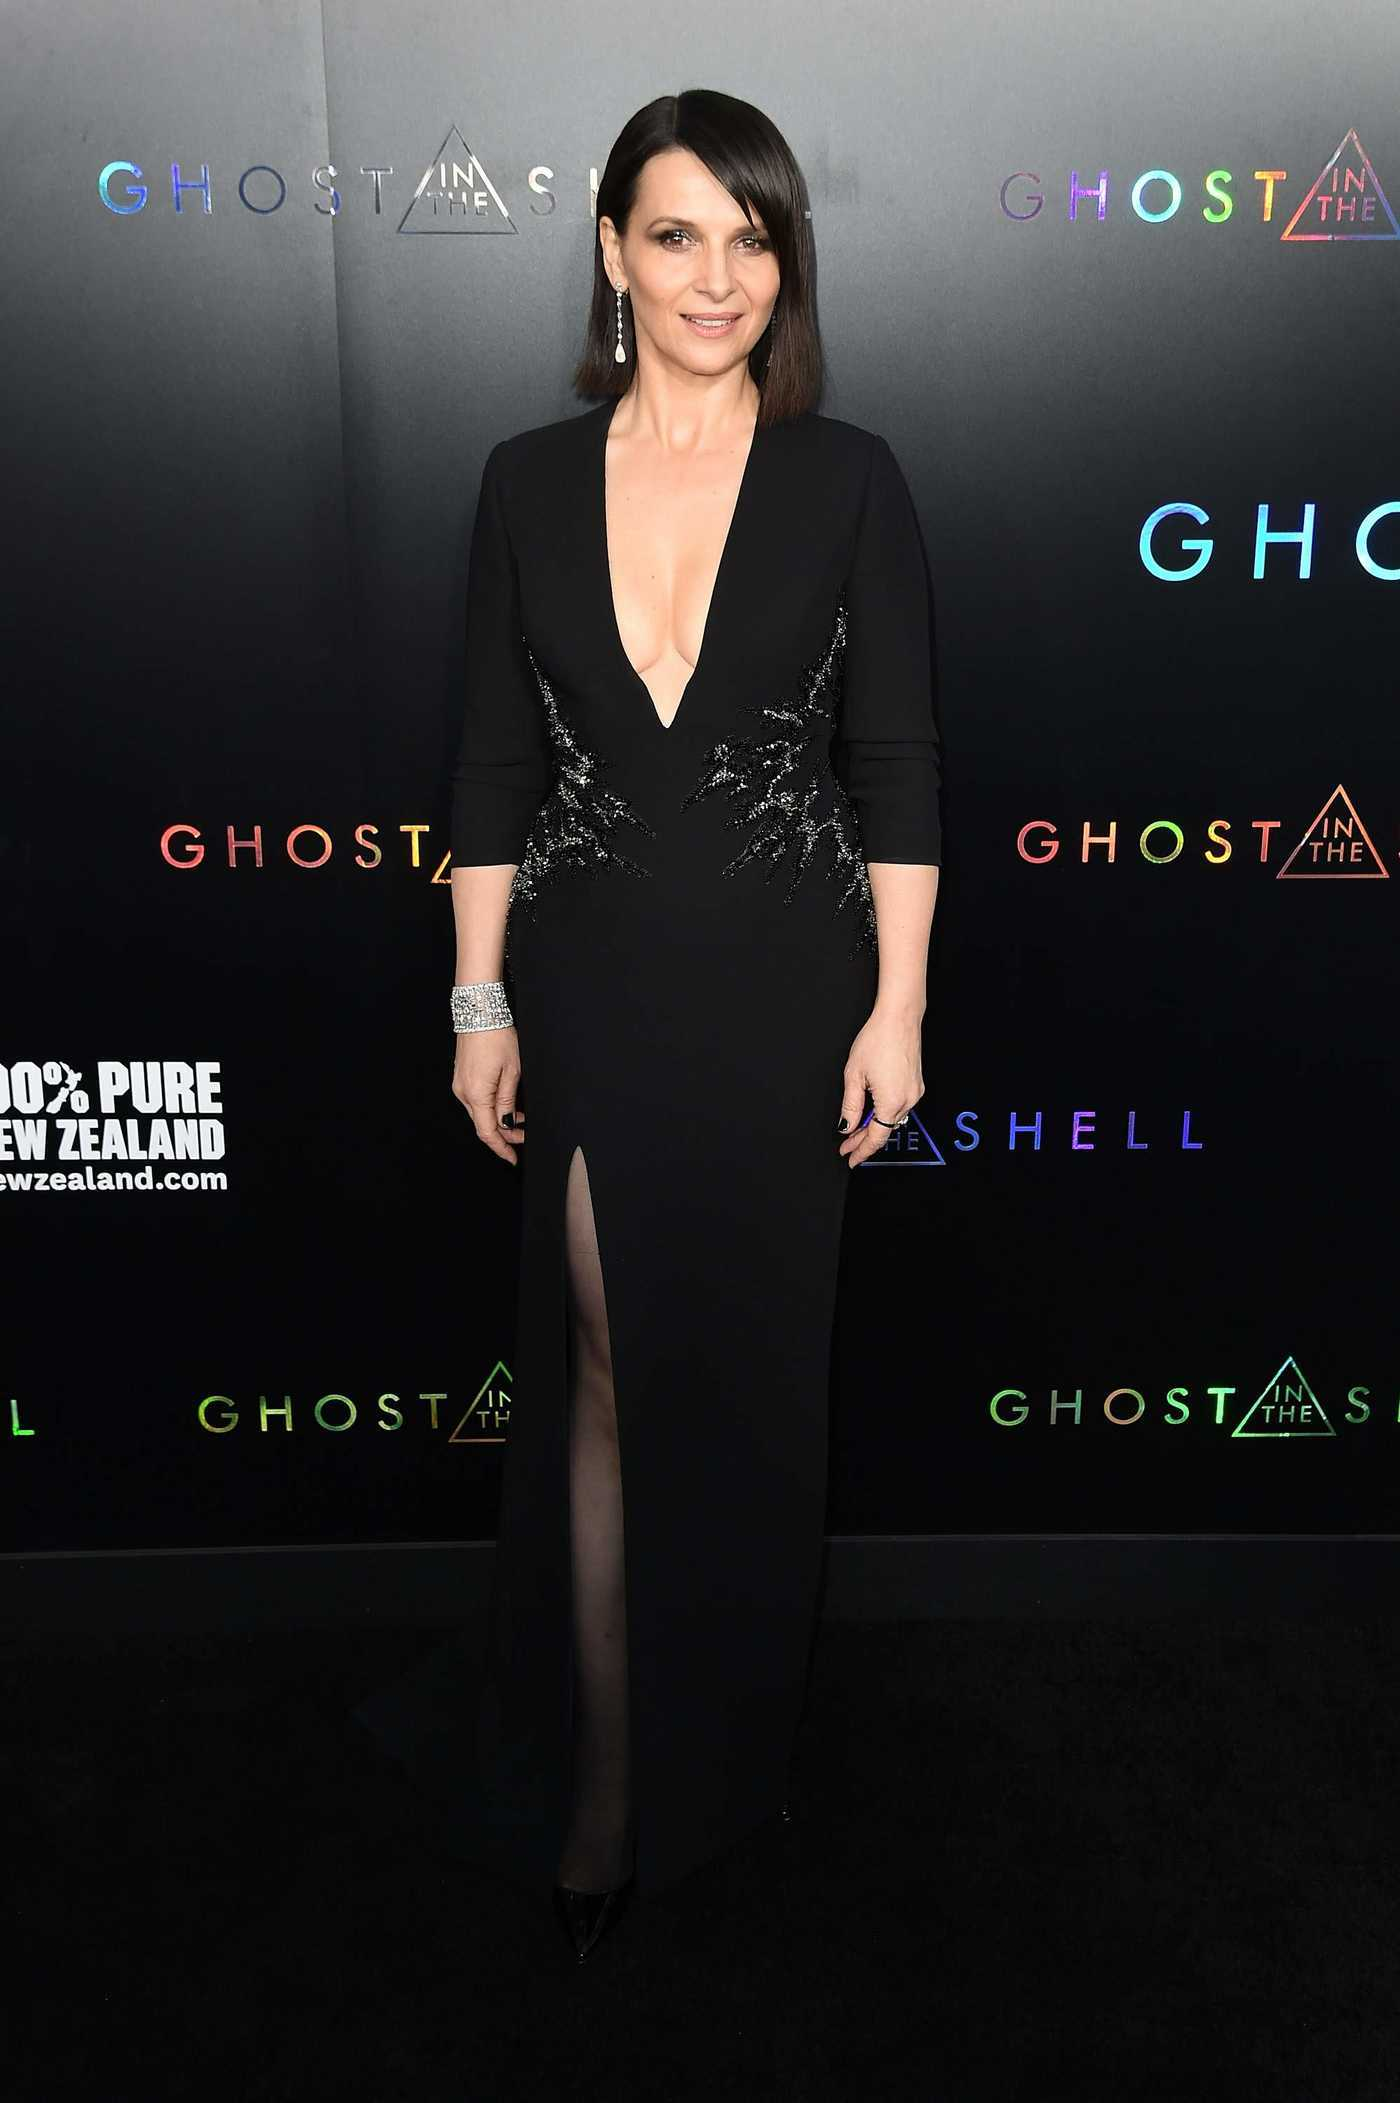 Juliette Binoche at the Ghost in the Shell Premiere in New York 03/29/2017